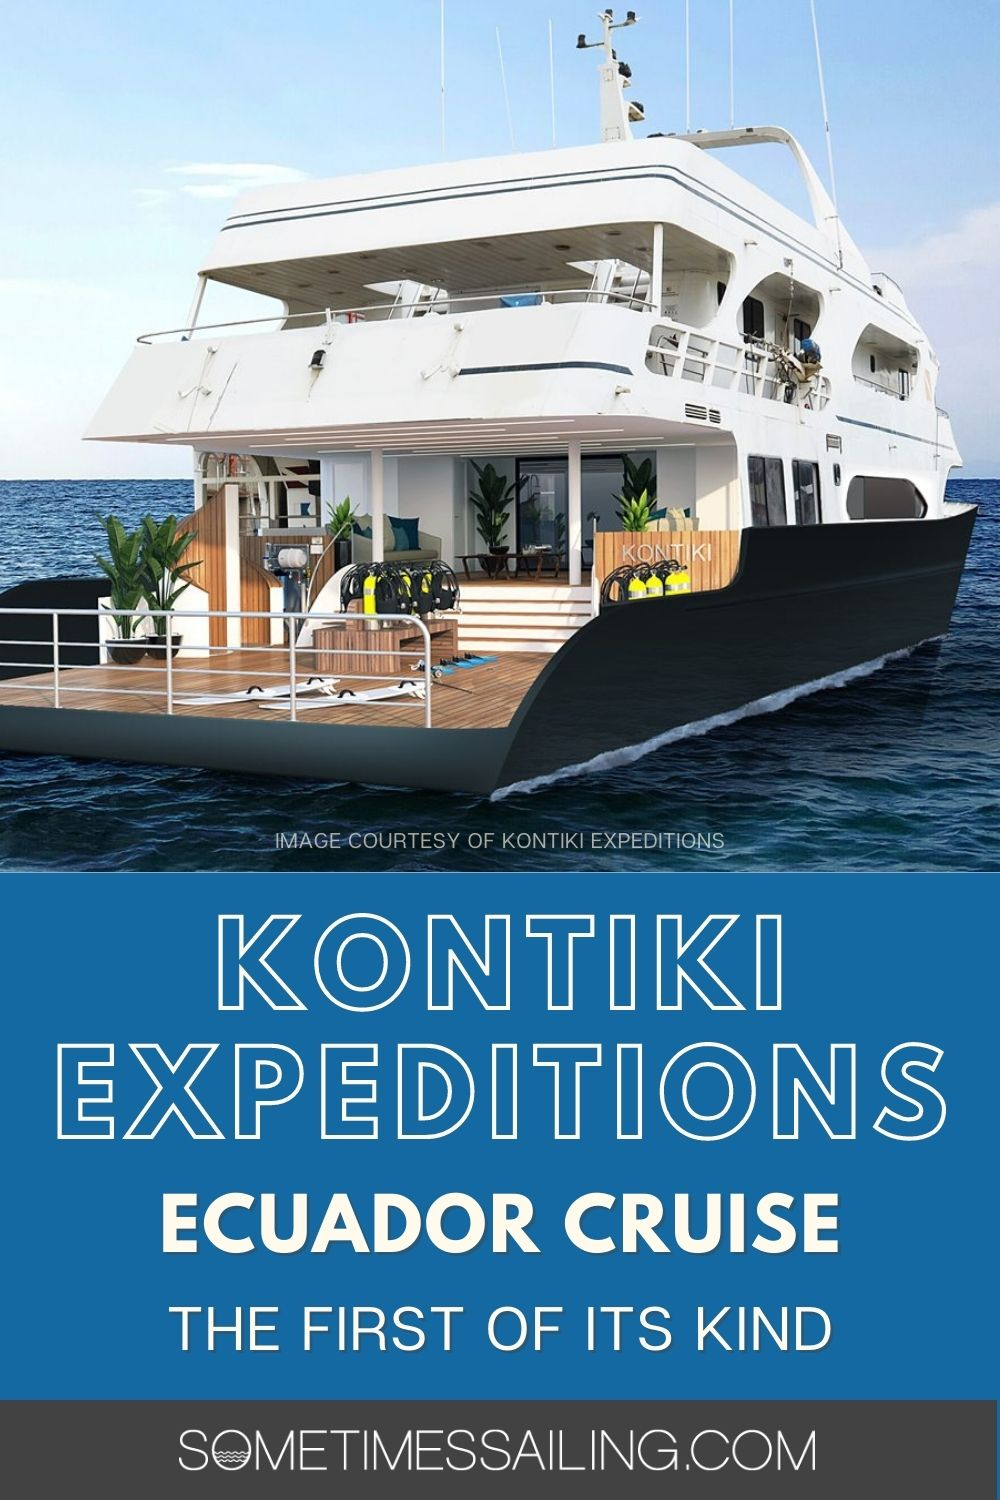 Kontiki Expeditions Ecuador Cruise: the first of its kind.